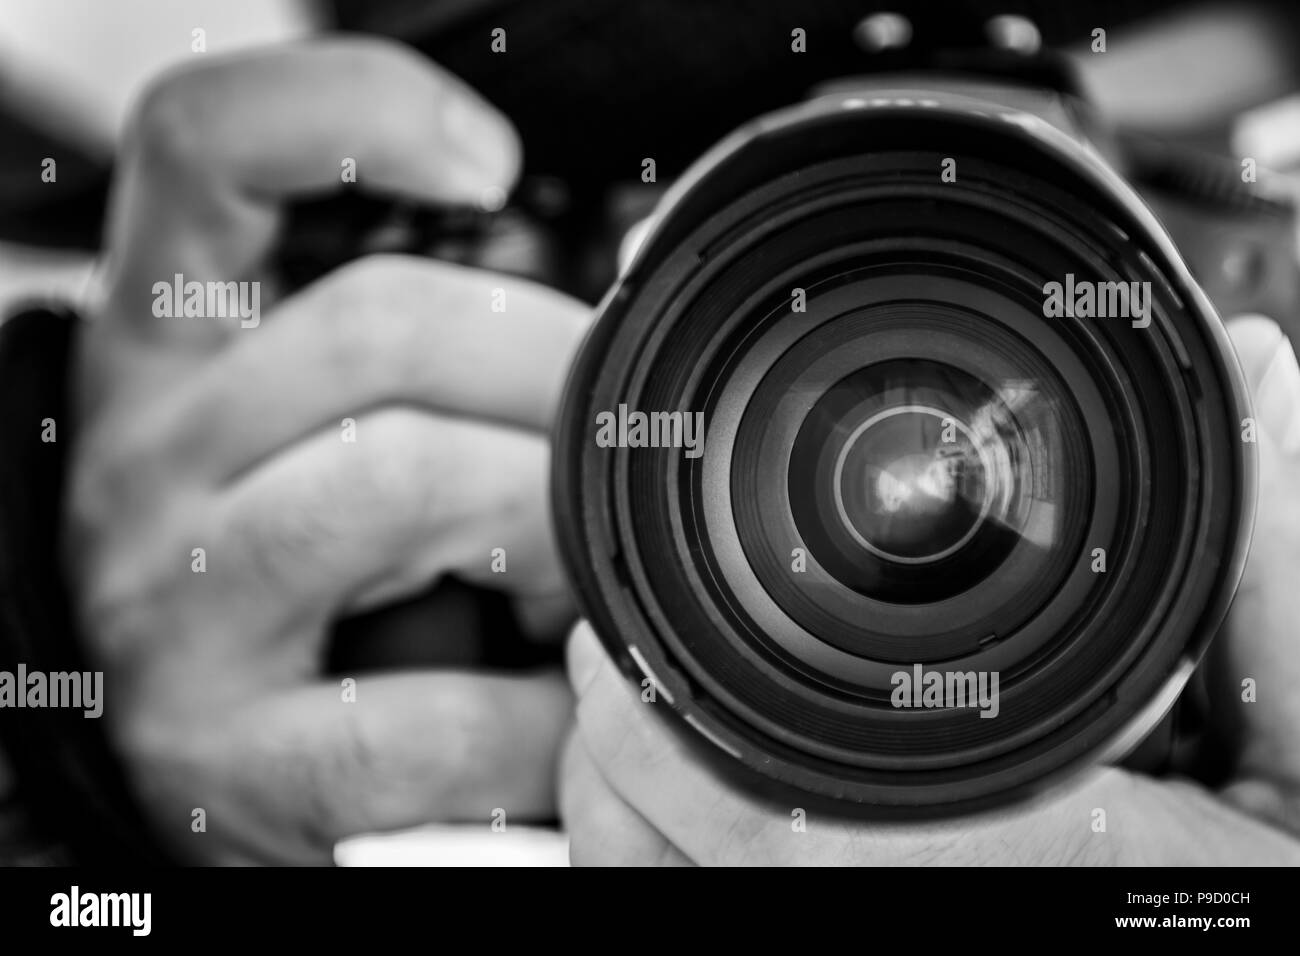 Close-up black and white shot of crop hands holding professional photo camera and taking pictures - Stock Image